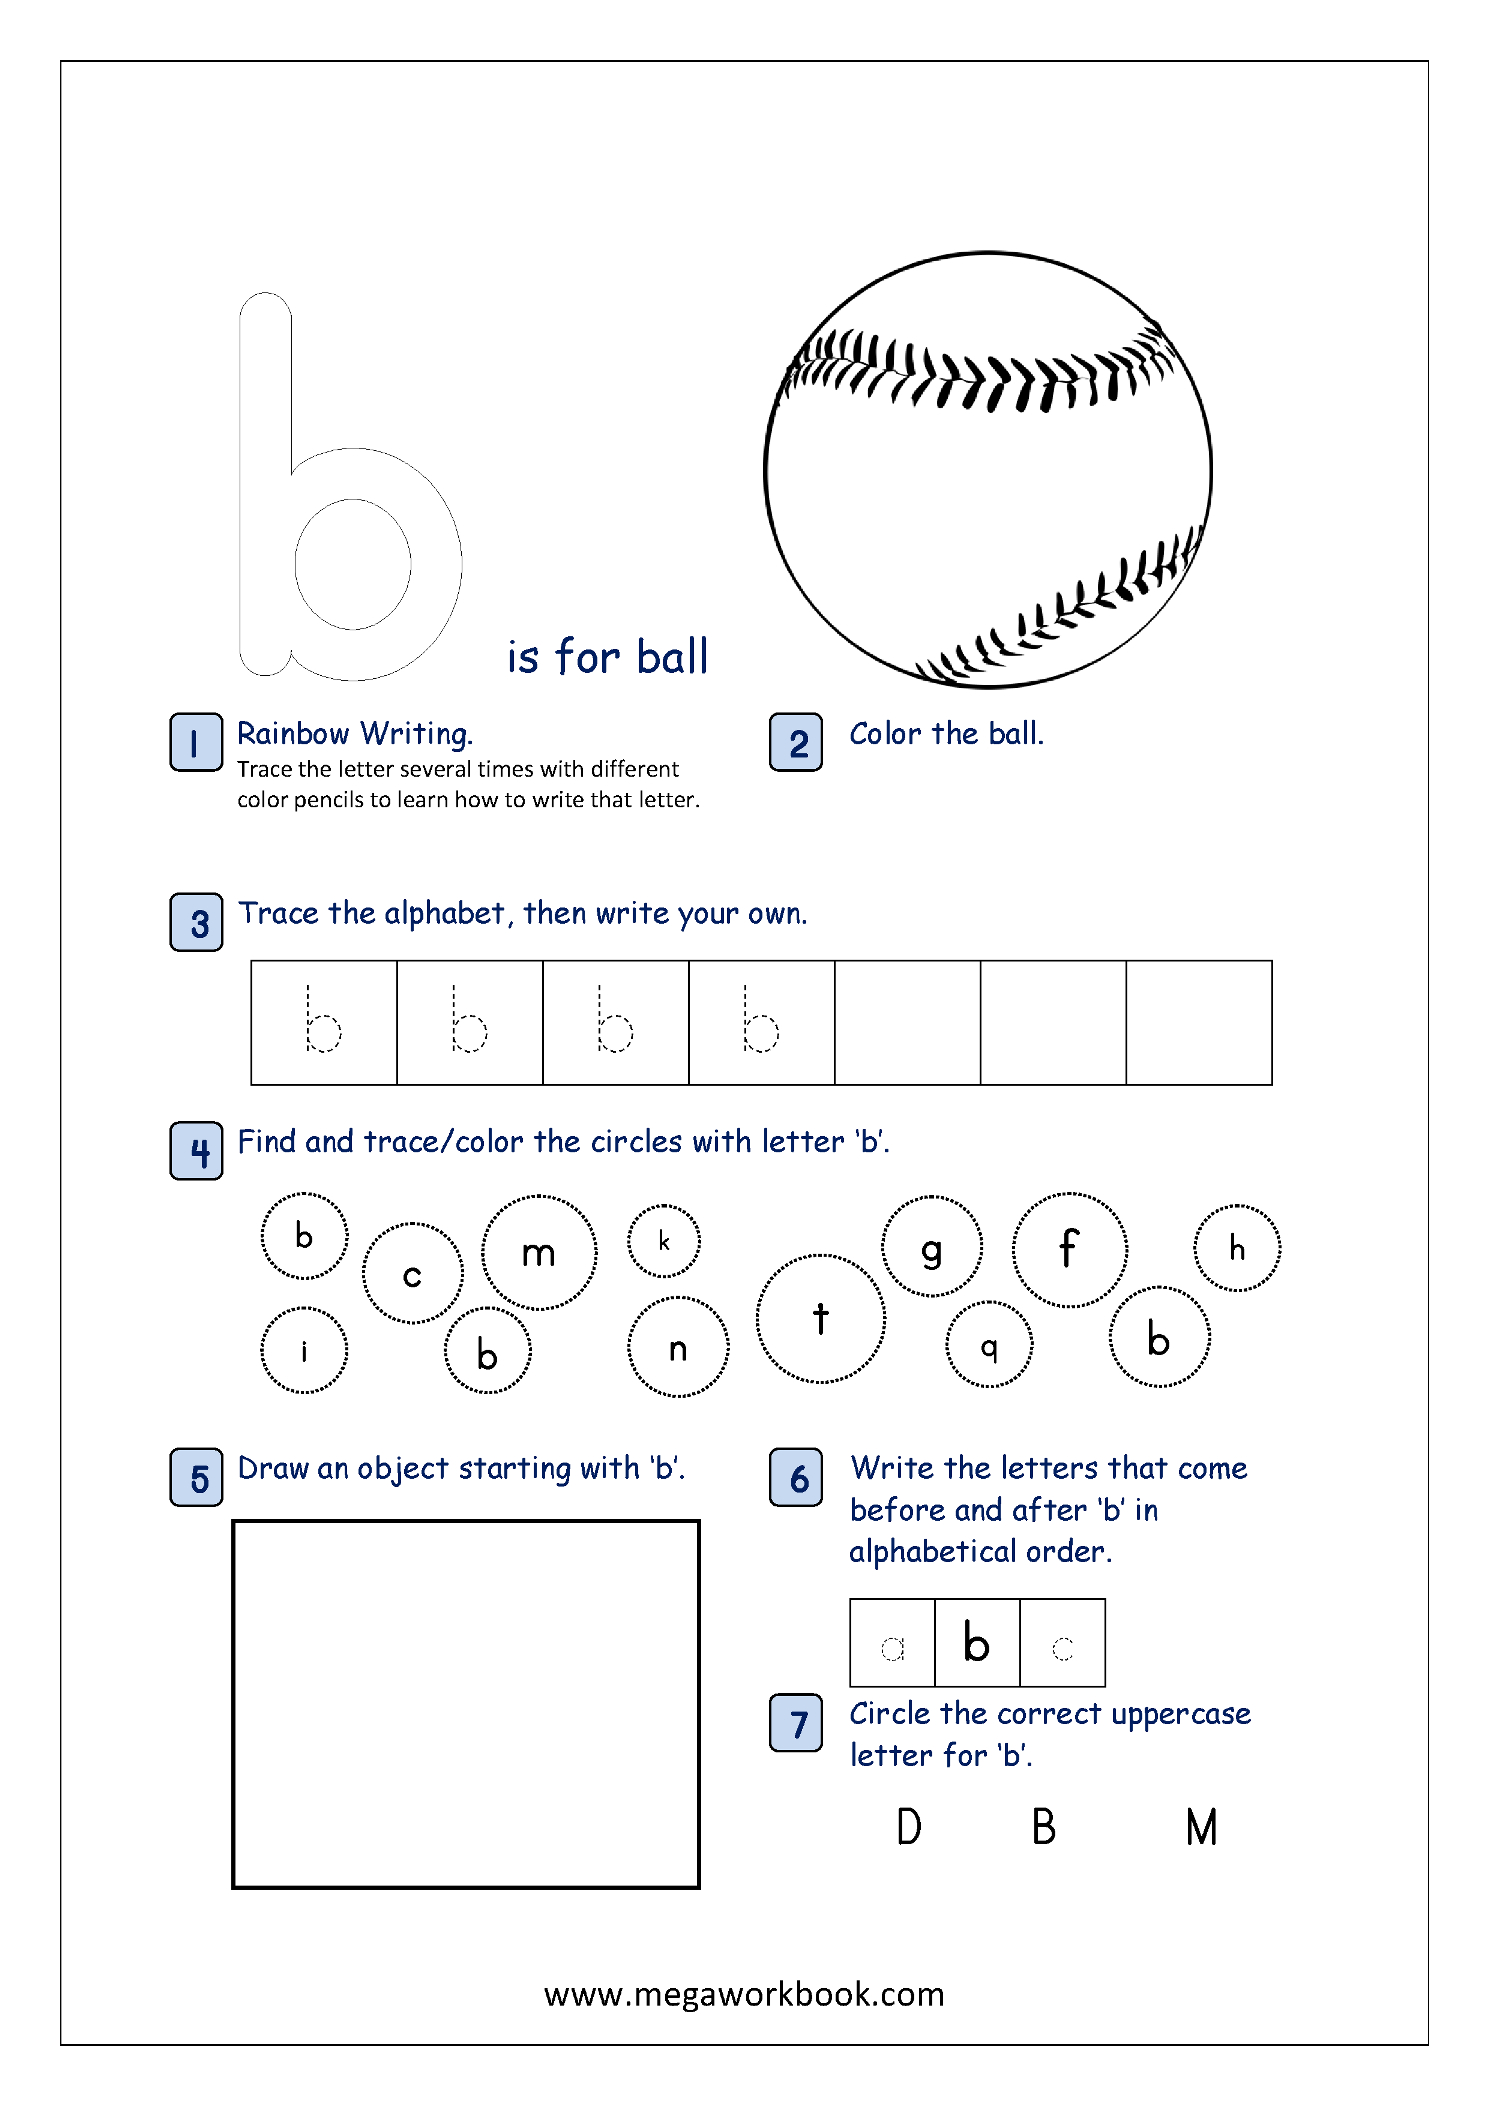 Free Printable Alphabet Recognition Worksheets For Small Letters - Free Printable Letter Recognition Worksheets